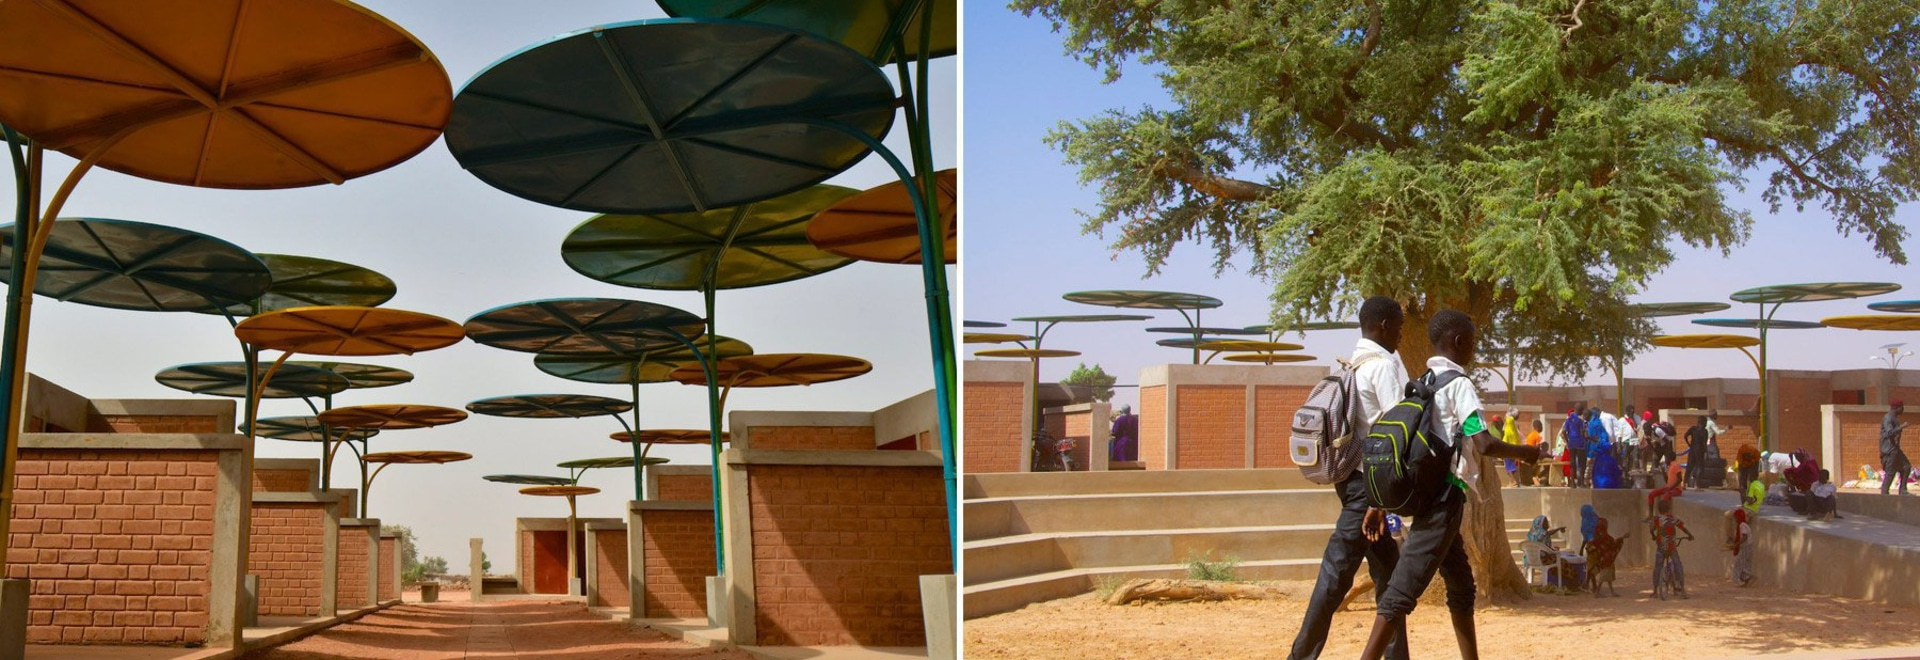 atelier masomi uses colorful metal canopies to build dandaji market in niger